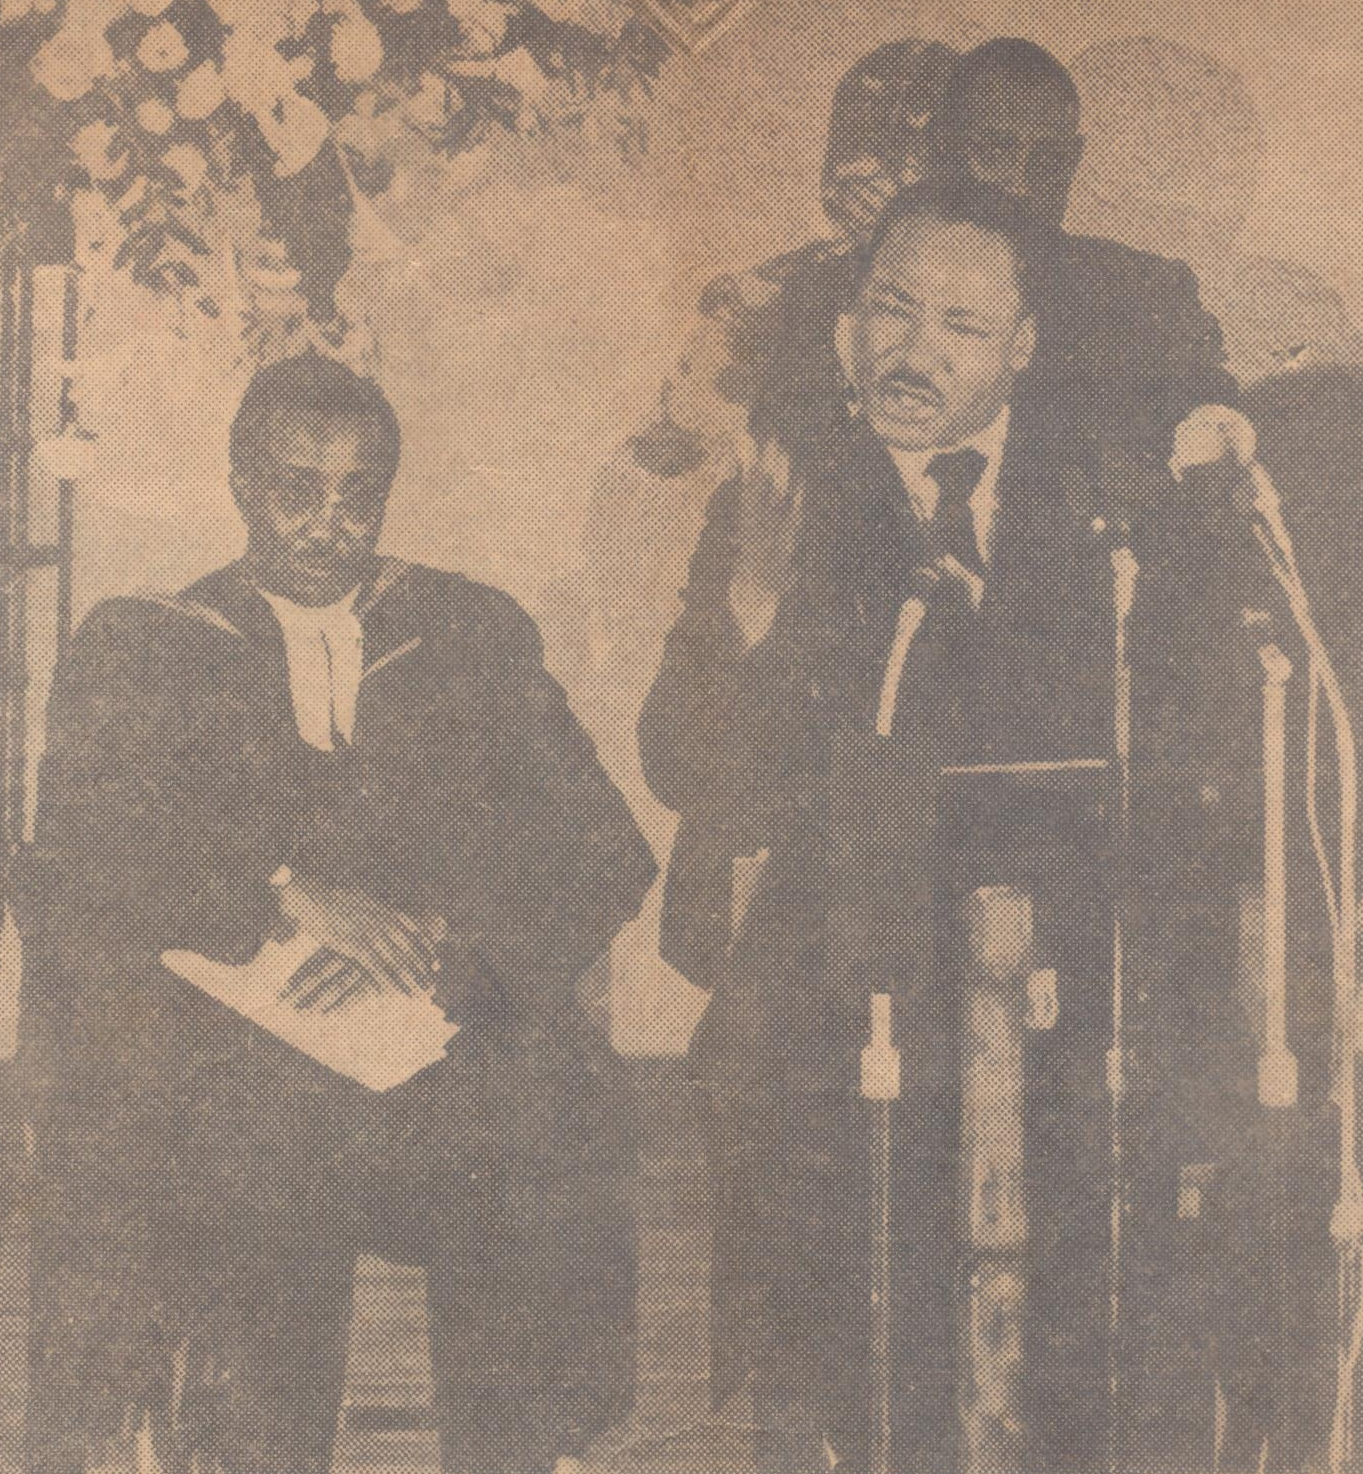 Rev. Dr. Martin Luther King 001